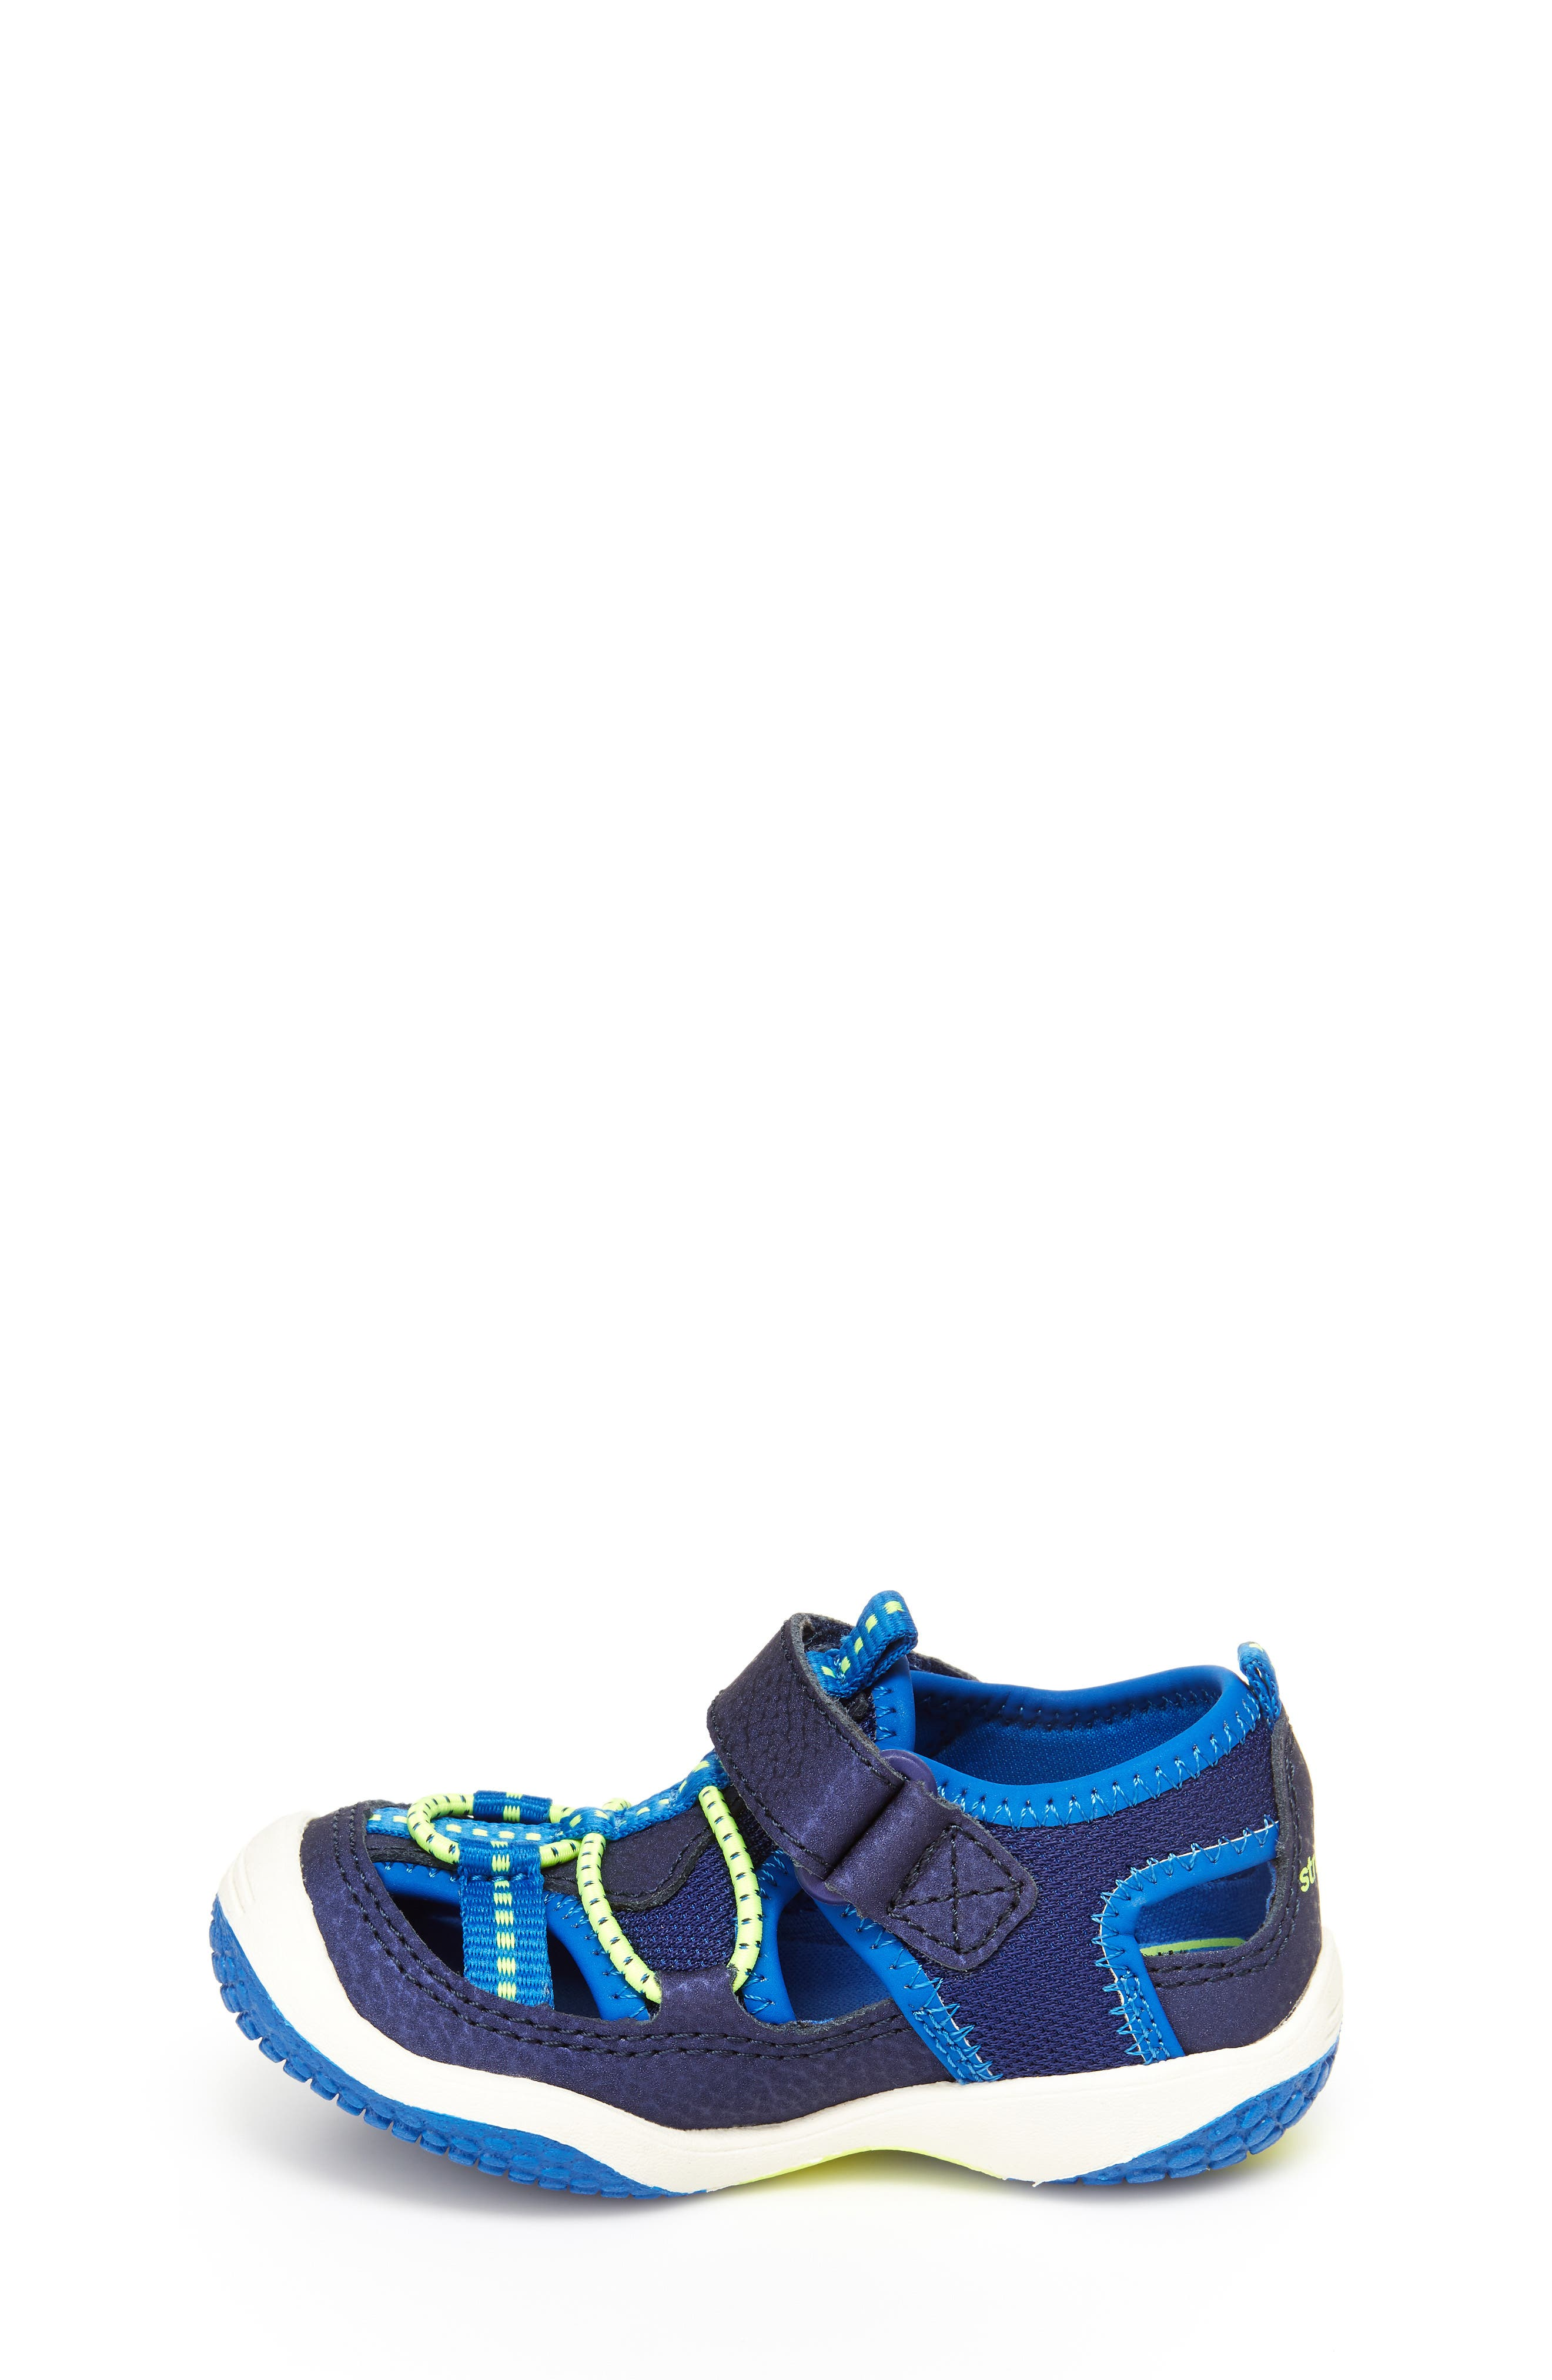 STRIDE RITE,                             Marina Water Sandal,                             Alternate thumbnail 7, color,                             ELECTRIC BLUE LEATHER/ TEXTILE